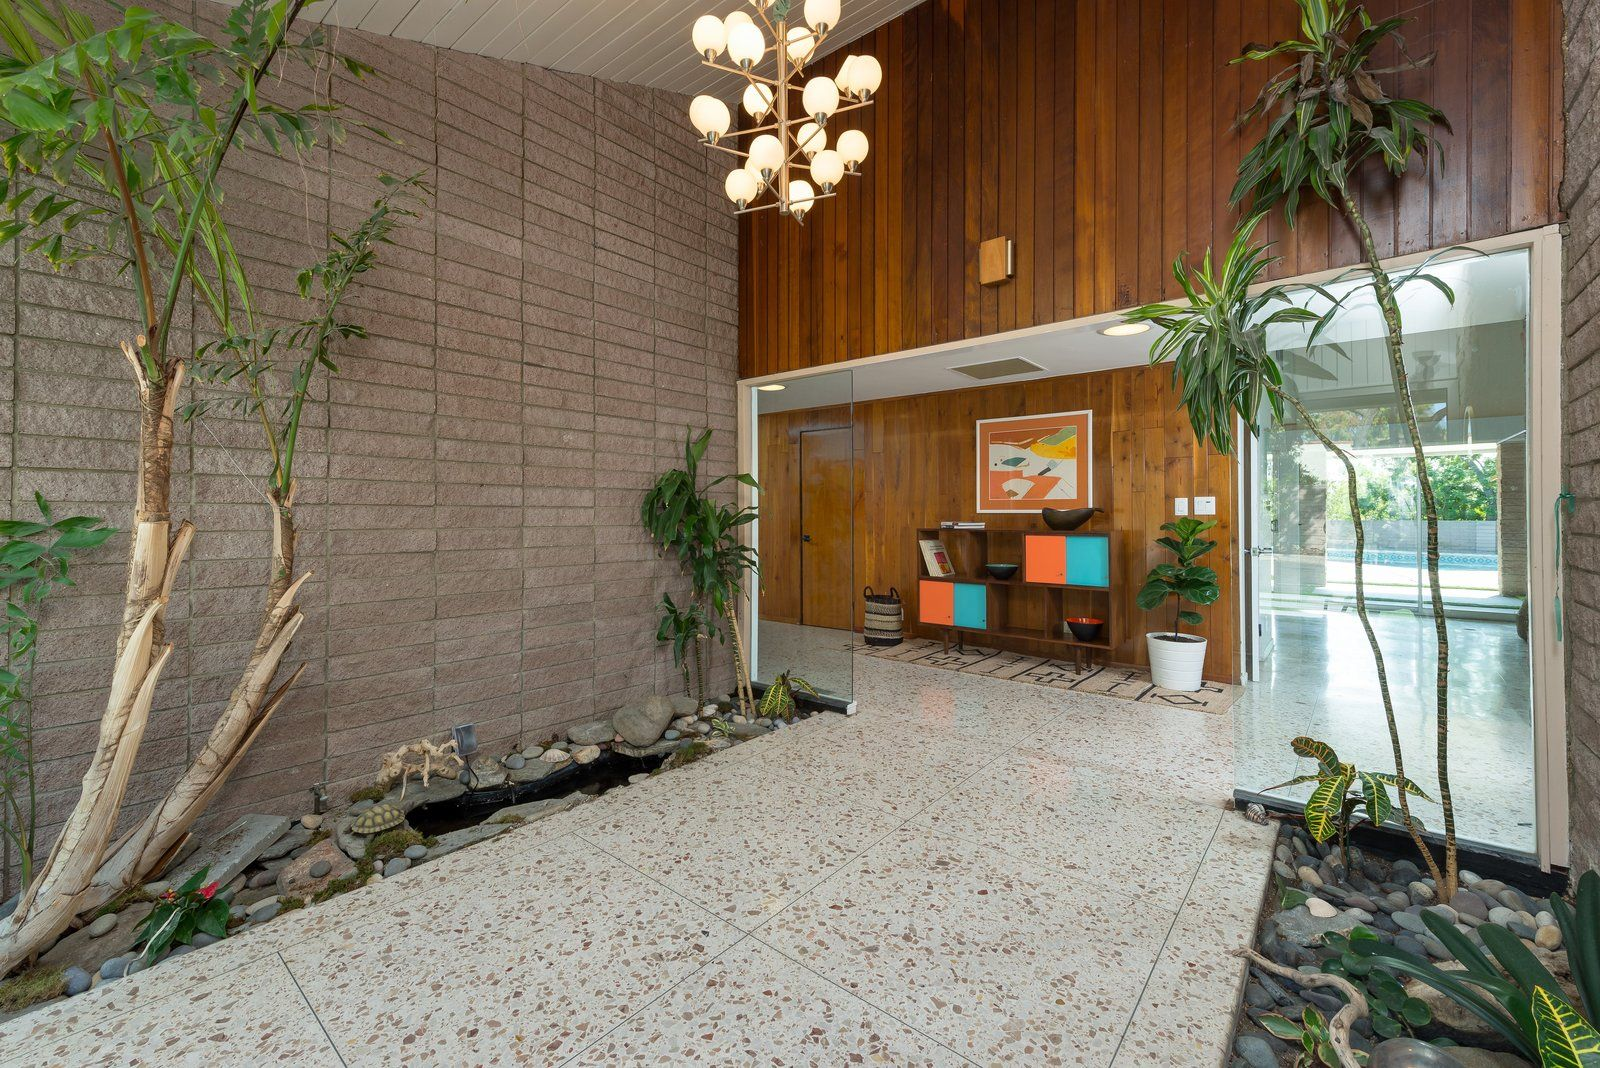 Photo 3 Of 11 In Step Back In Time In This Midcentury Now